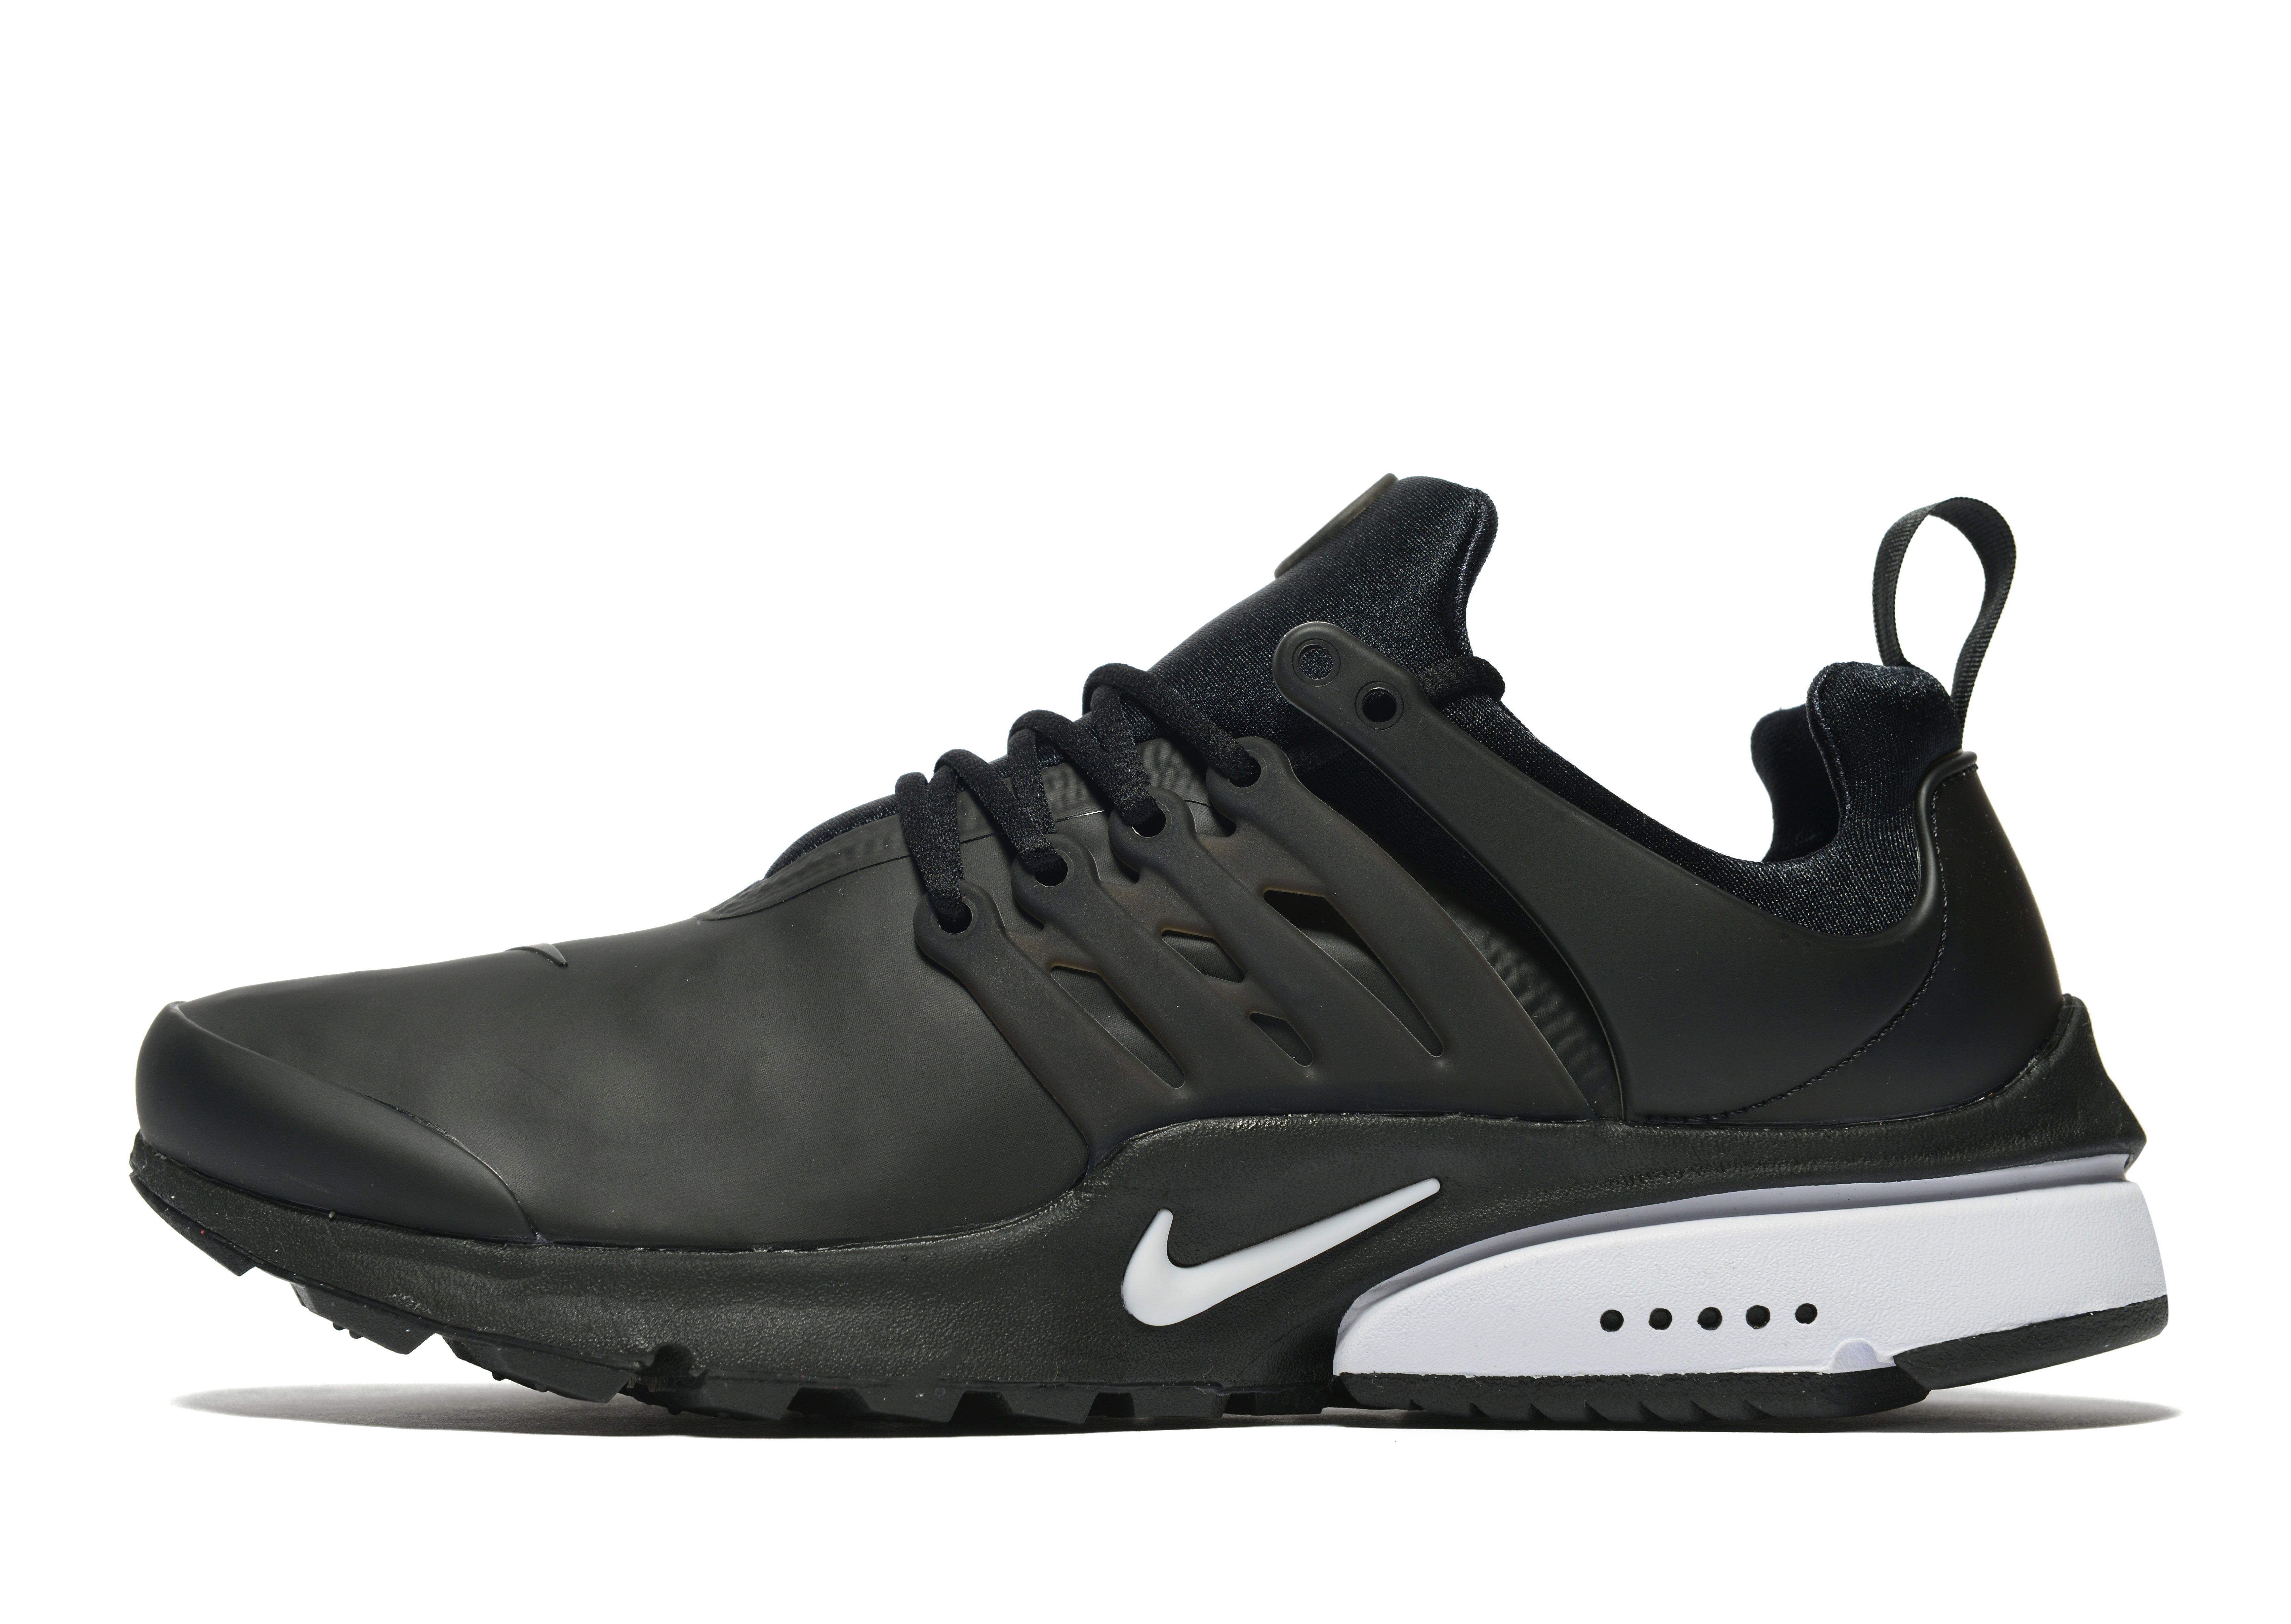 cheaper 69fea a6822 ... Black Shoe 862749 001 Nike Air Presto Low Utility JD Sports ...